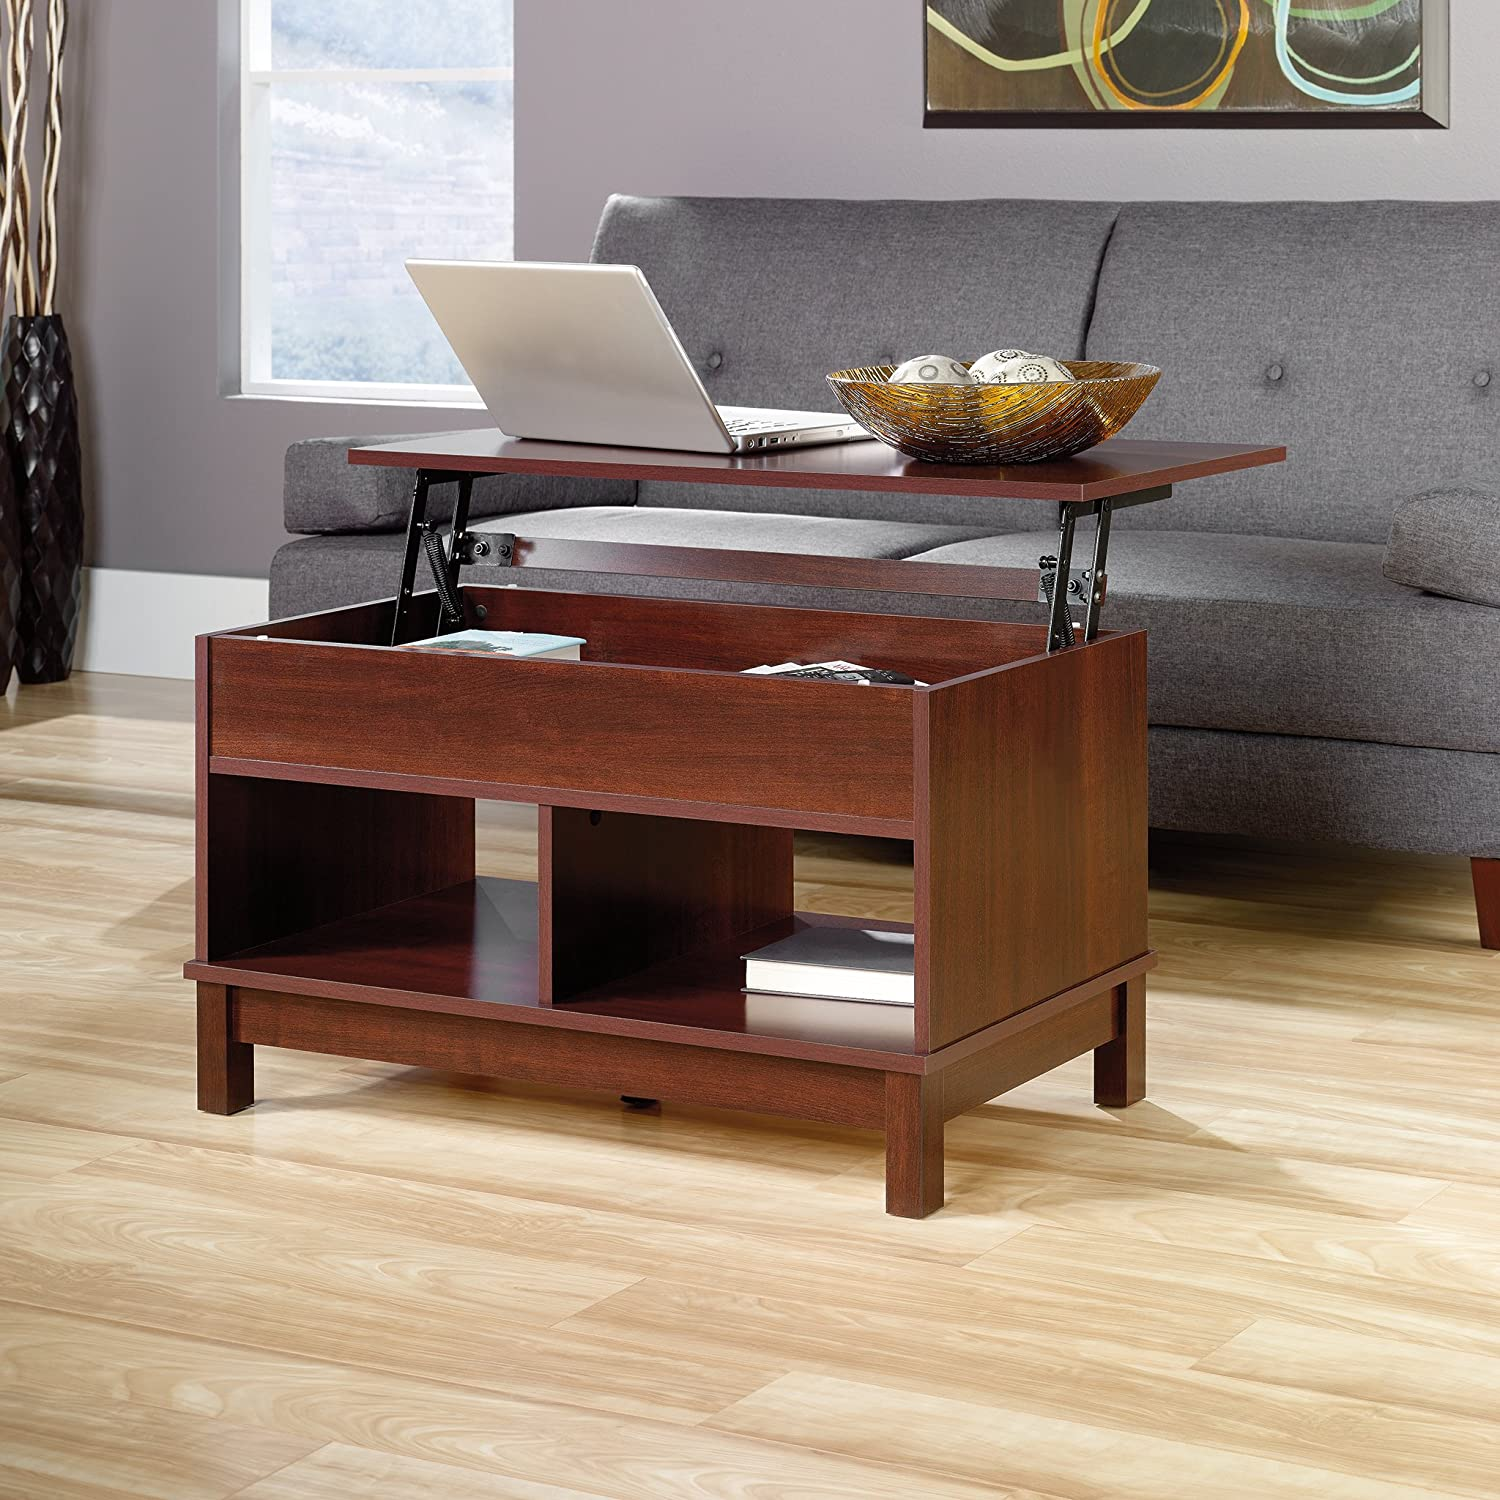 Sauder Kendall Square Lift Top Coffee Table Select Cherry Amazon